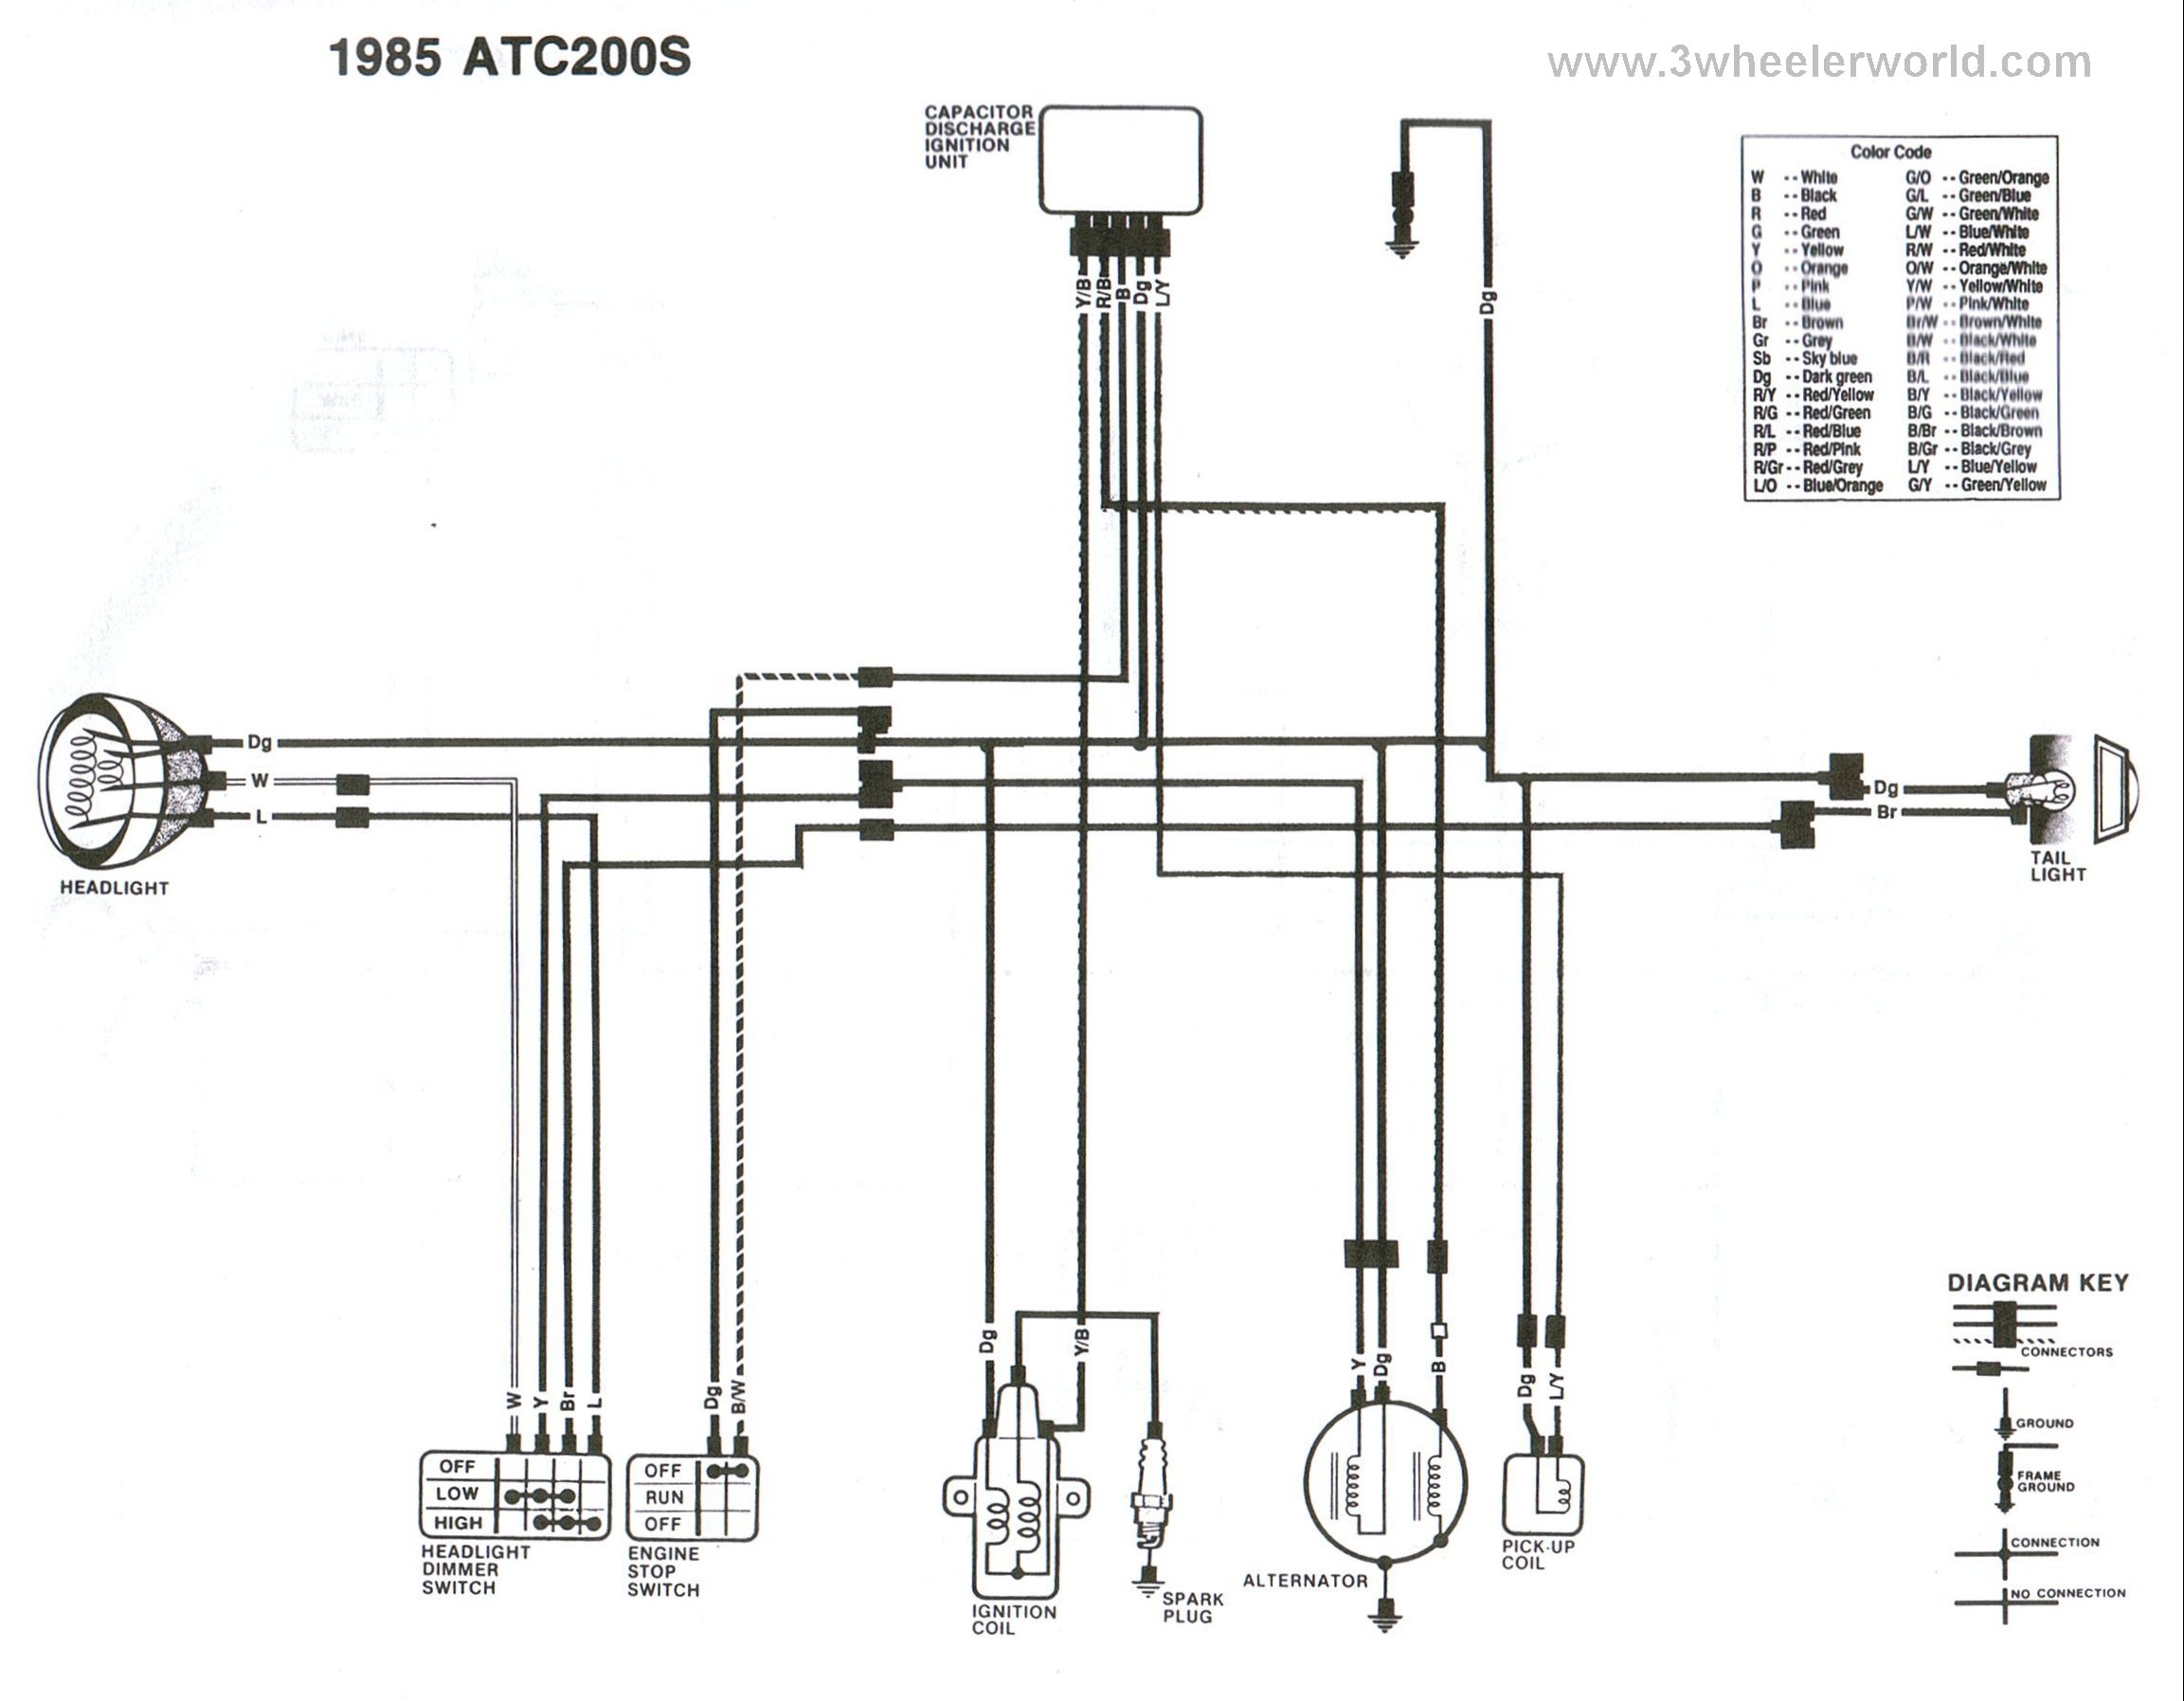 ATC200Sx85 refrigerator compressor wiring diagram dolgular com  at aneh.co